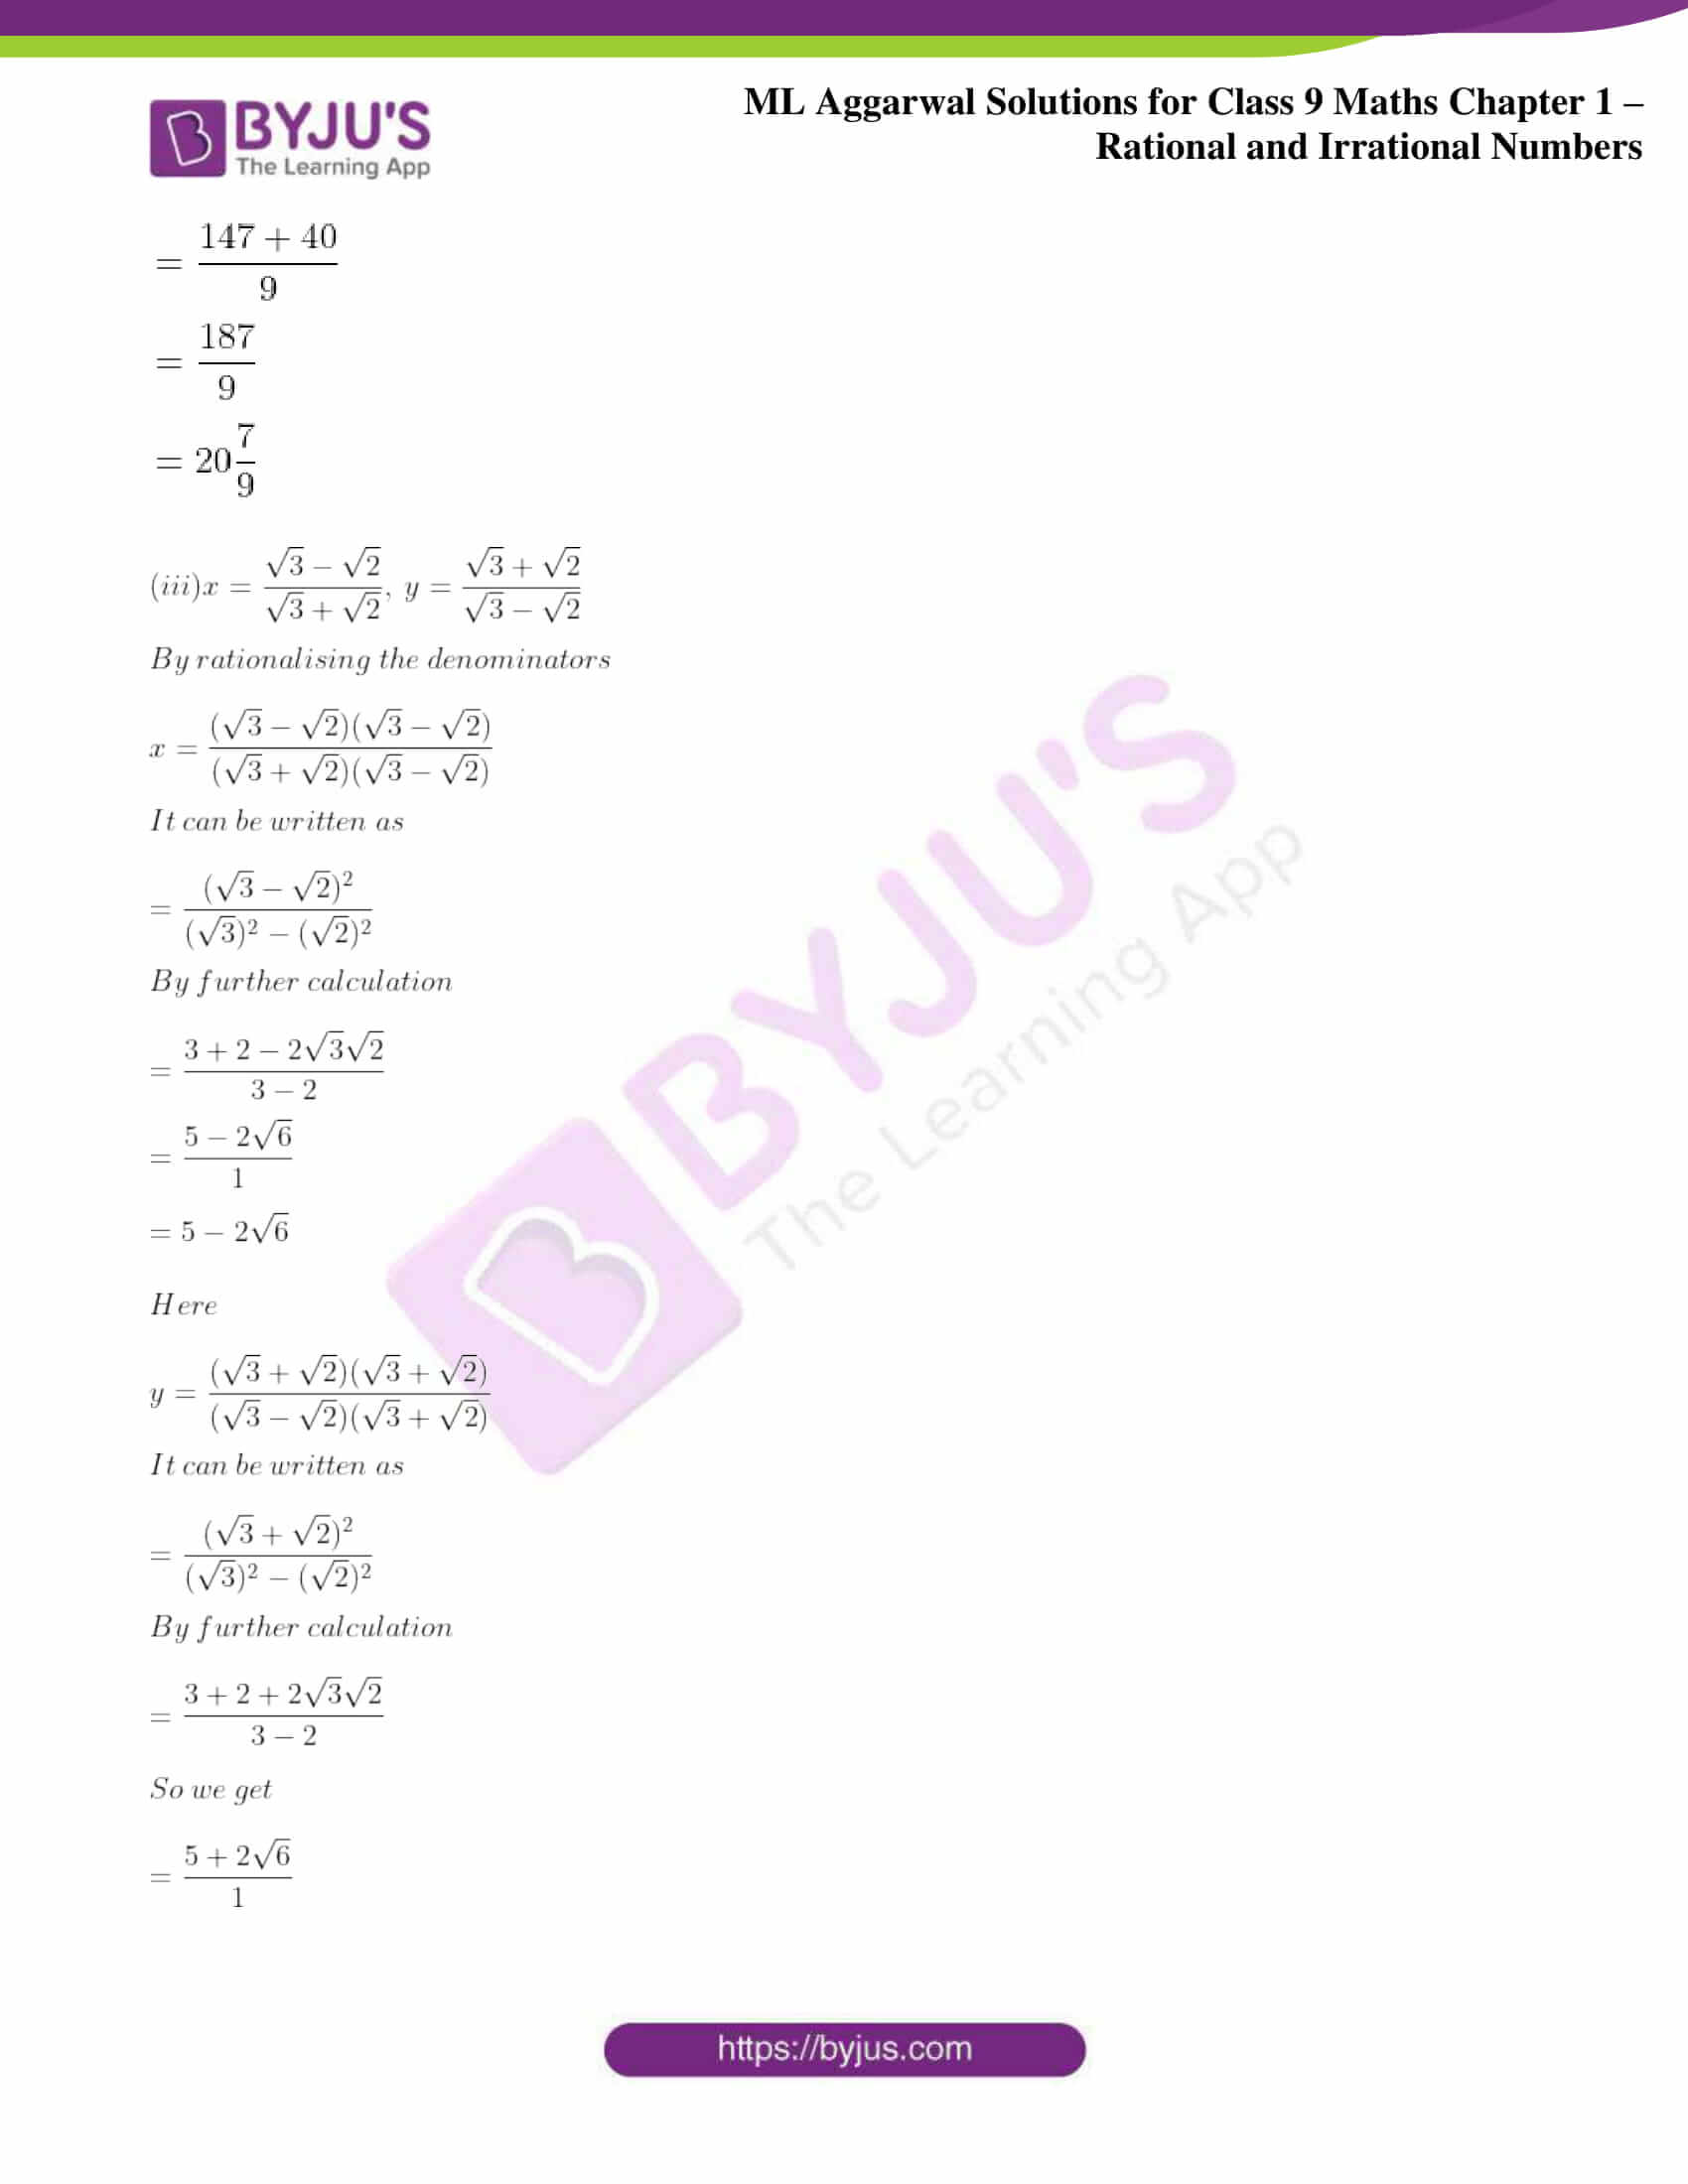 ml aggarwal solutions for class 9 maths chapter 1 77